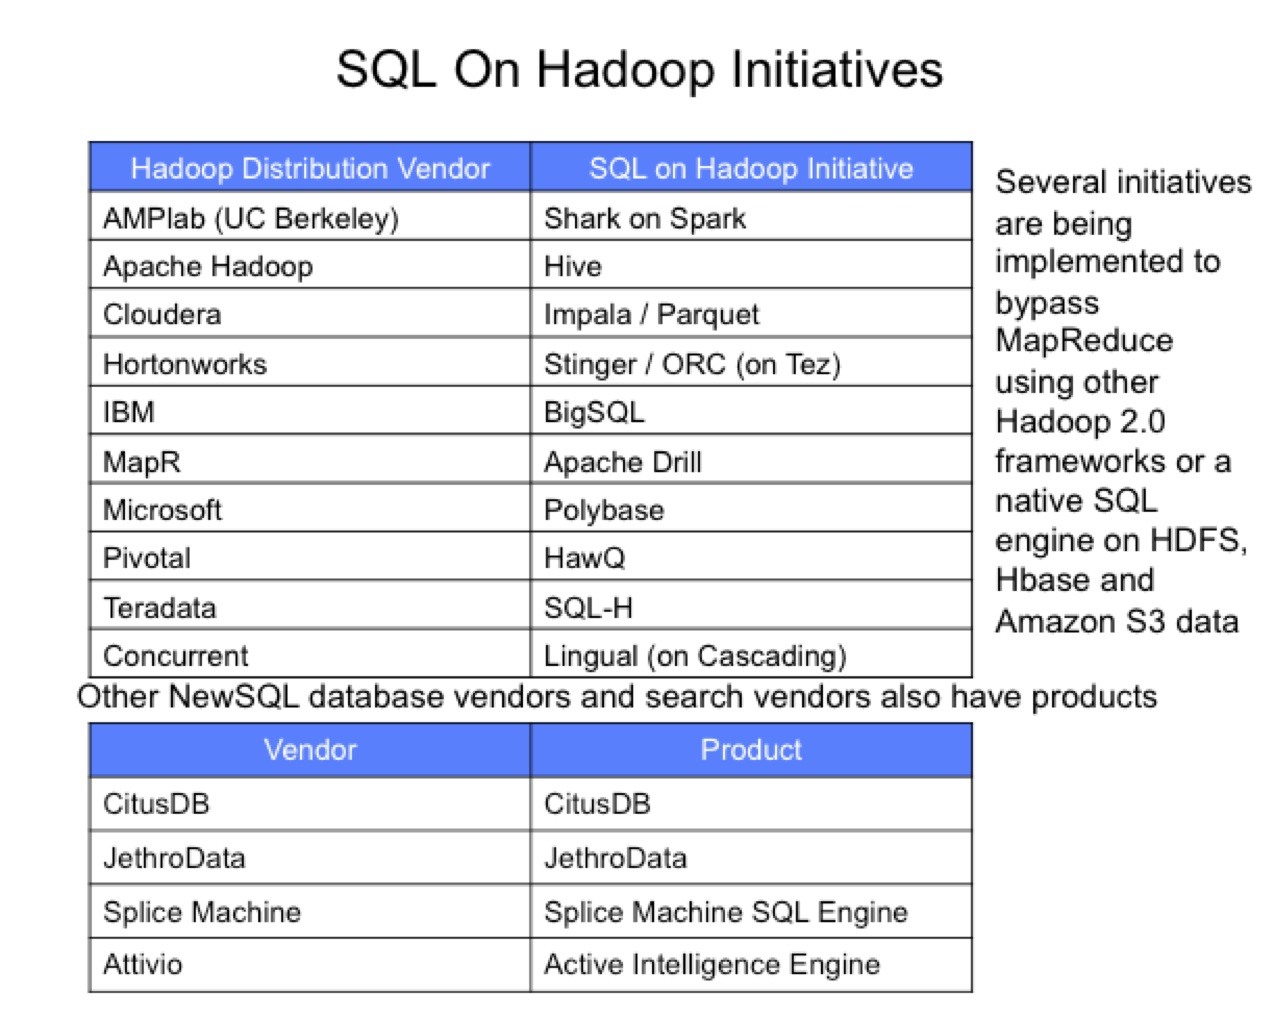 mike ferguson s blog latest opinions from one of europe s some of the sessions on the sql on hadoop were a little disappointing as they focussed on far too much on query benchmarks rather than the challenges of